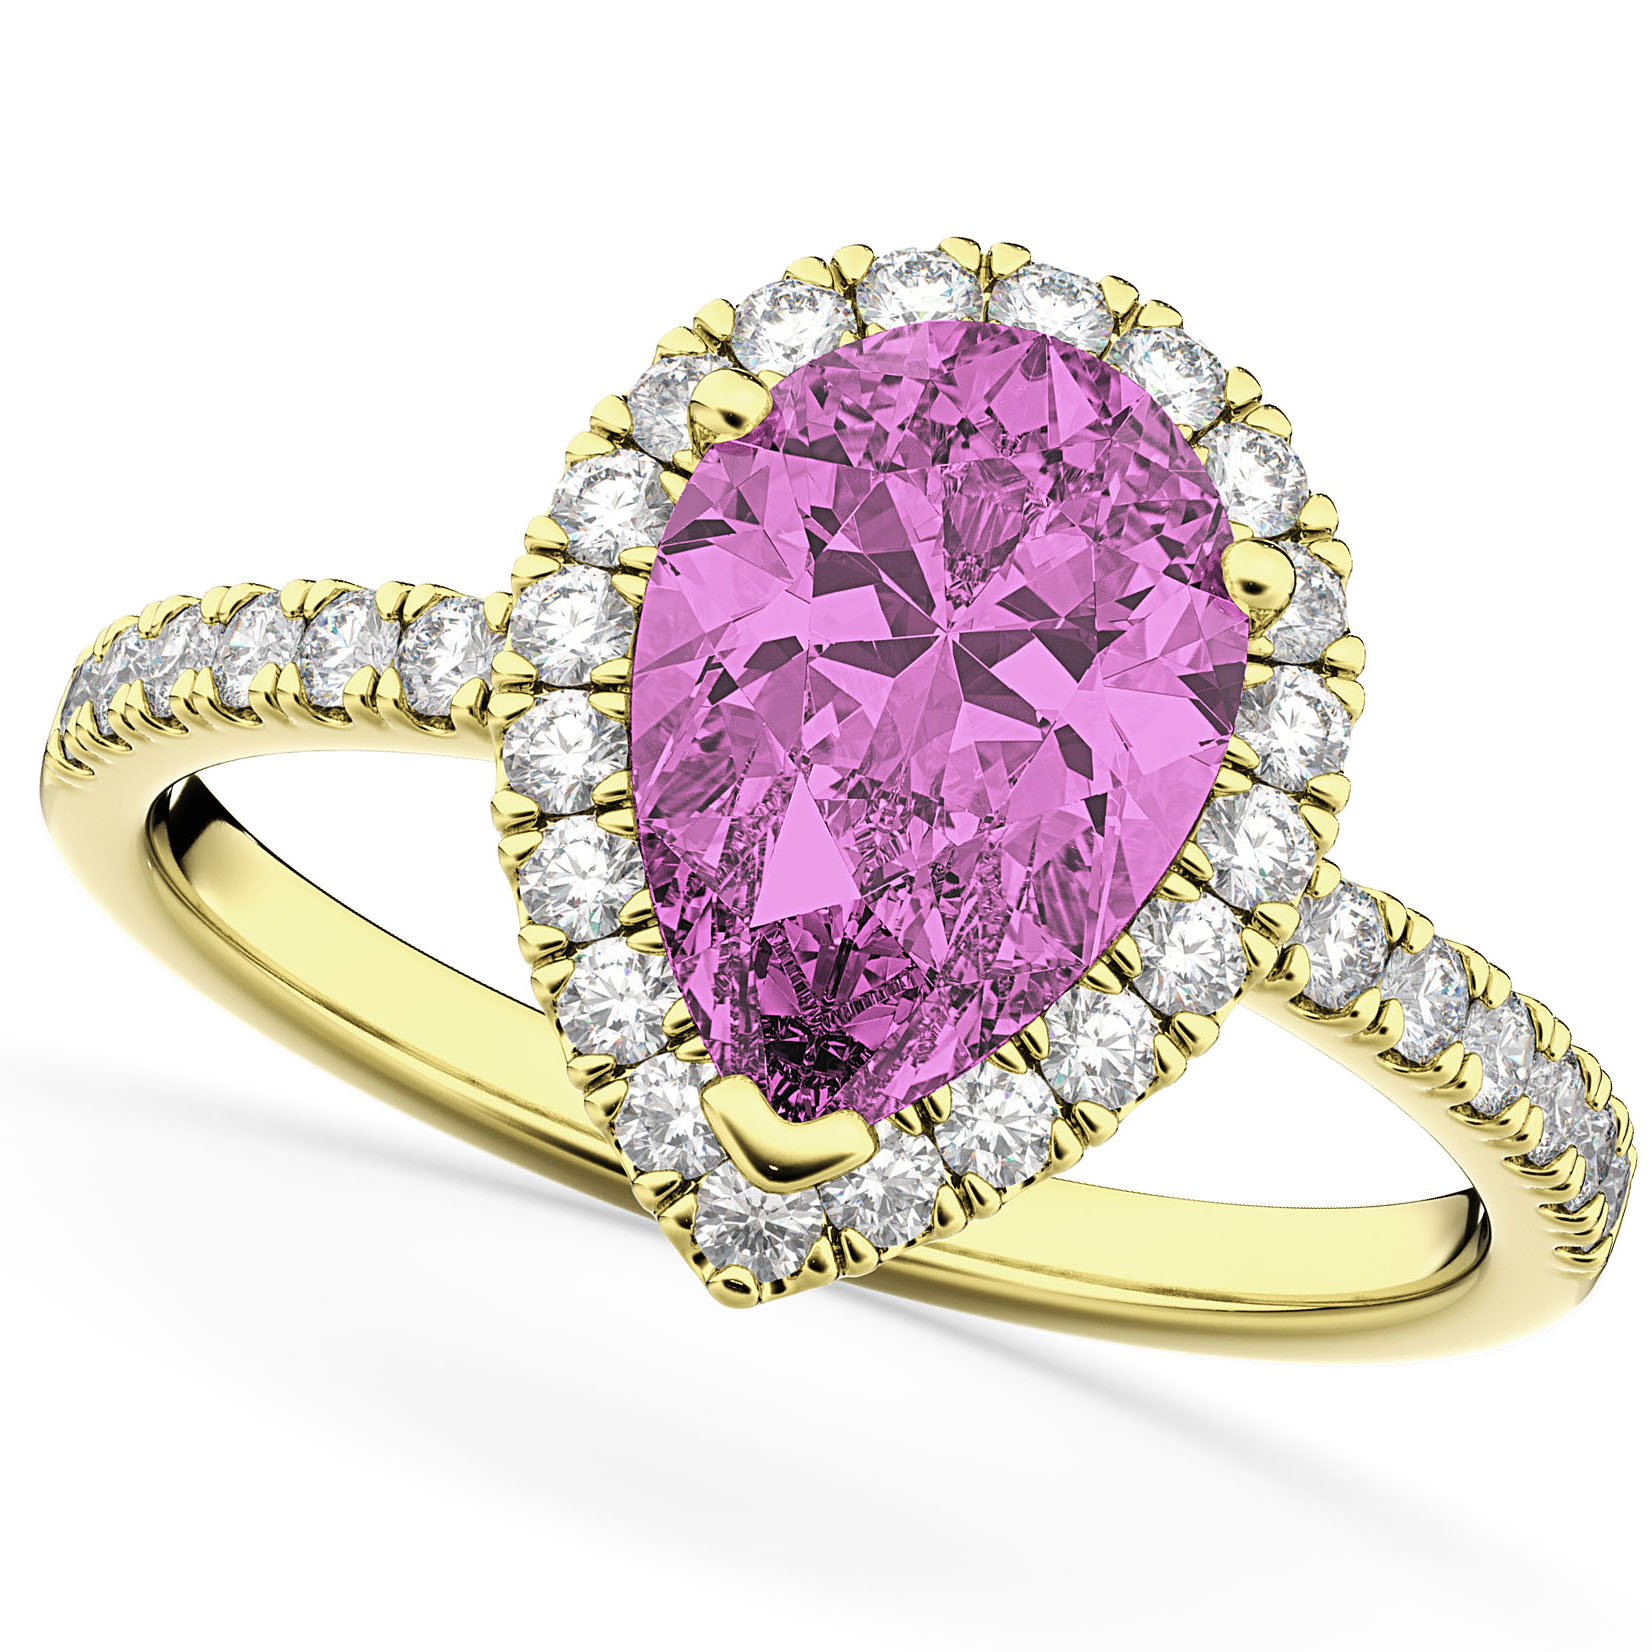 Pear Cut Halo Pink Sapphire & Diamond Engagement Ring 14K Yellow Gold 3.01ct